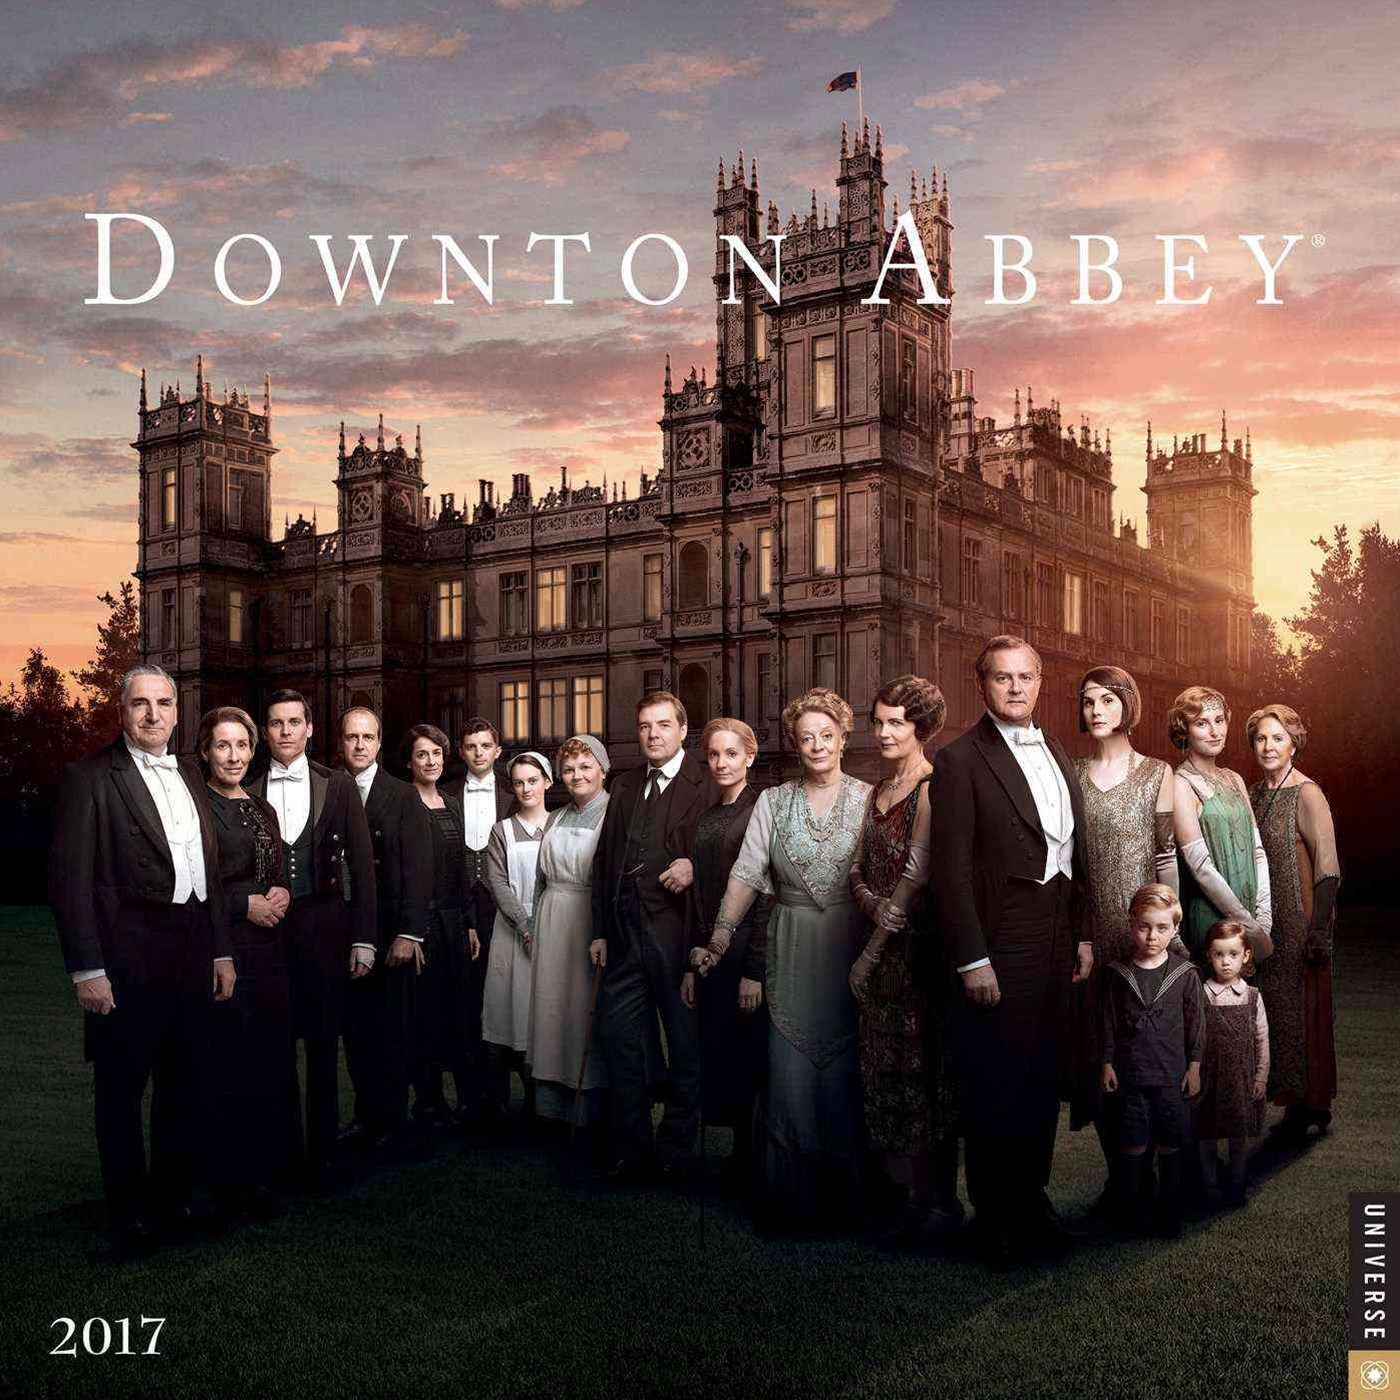 Downton Abbey 2017 Calendar